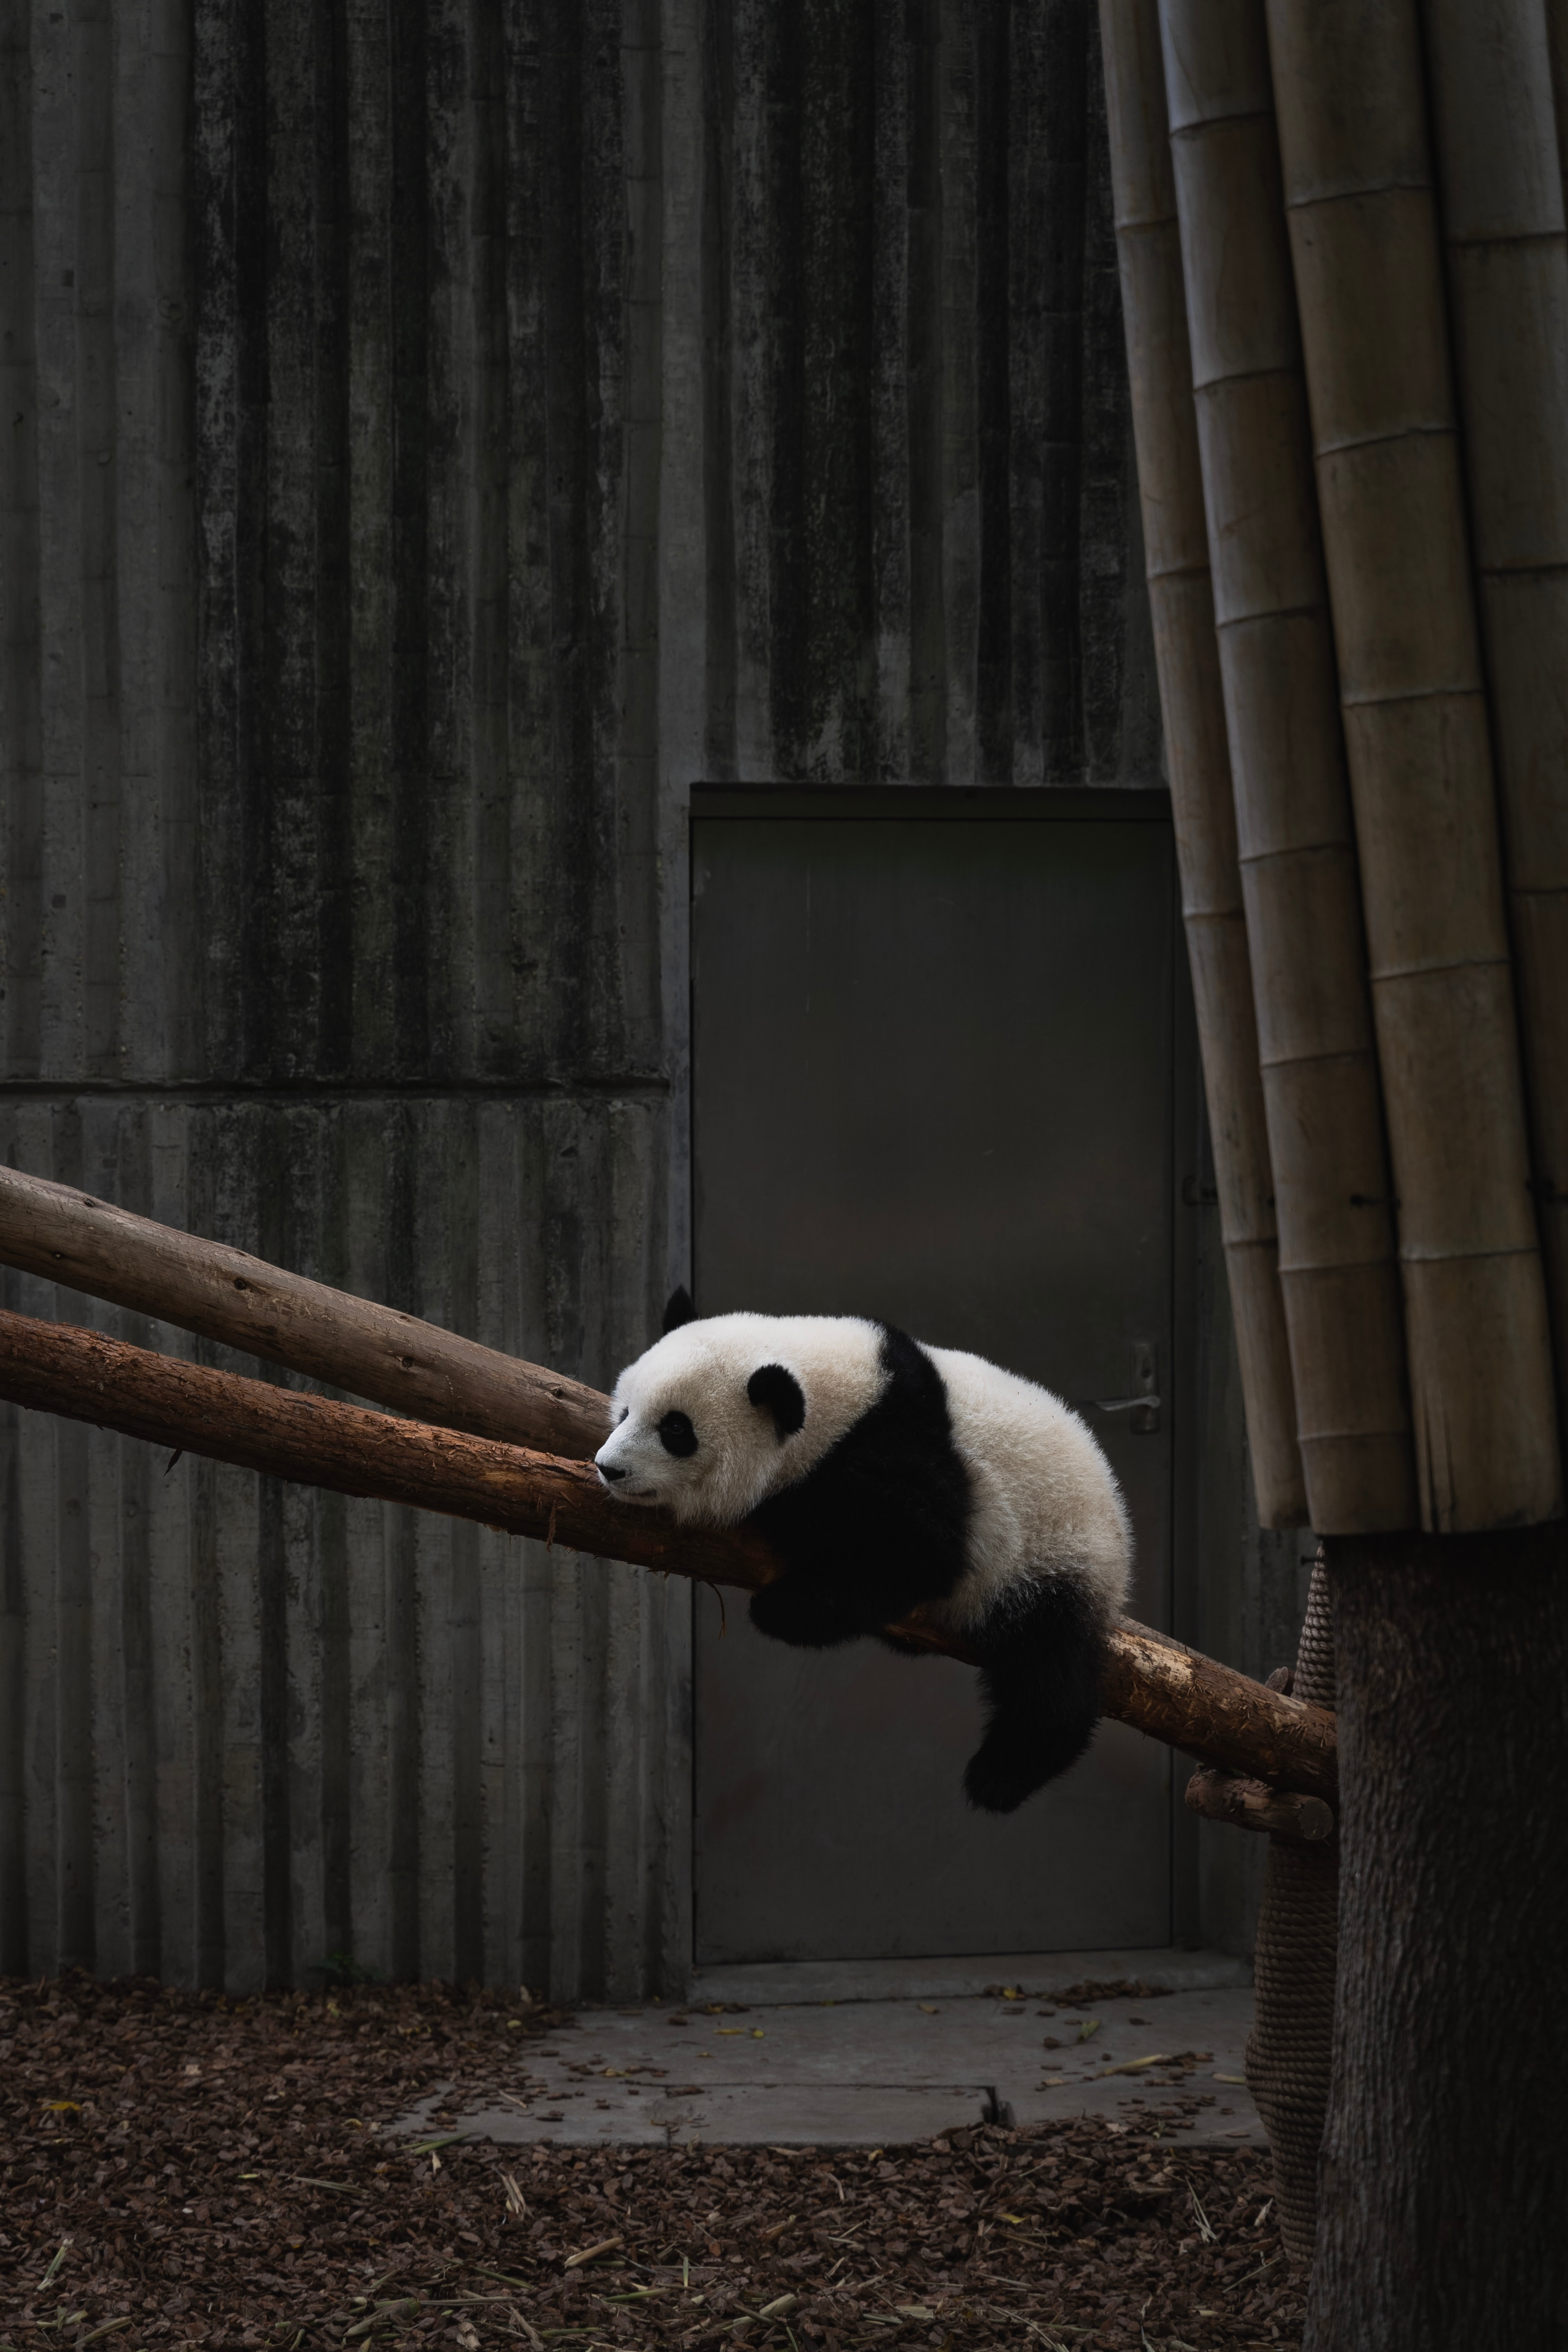 146839 download wallpaper Animals, Panda, Animal, Wood, Tree, Bamboo screensavers and pictures for free